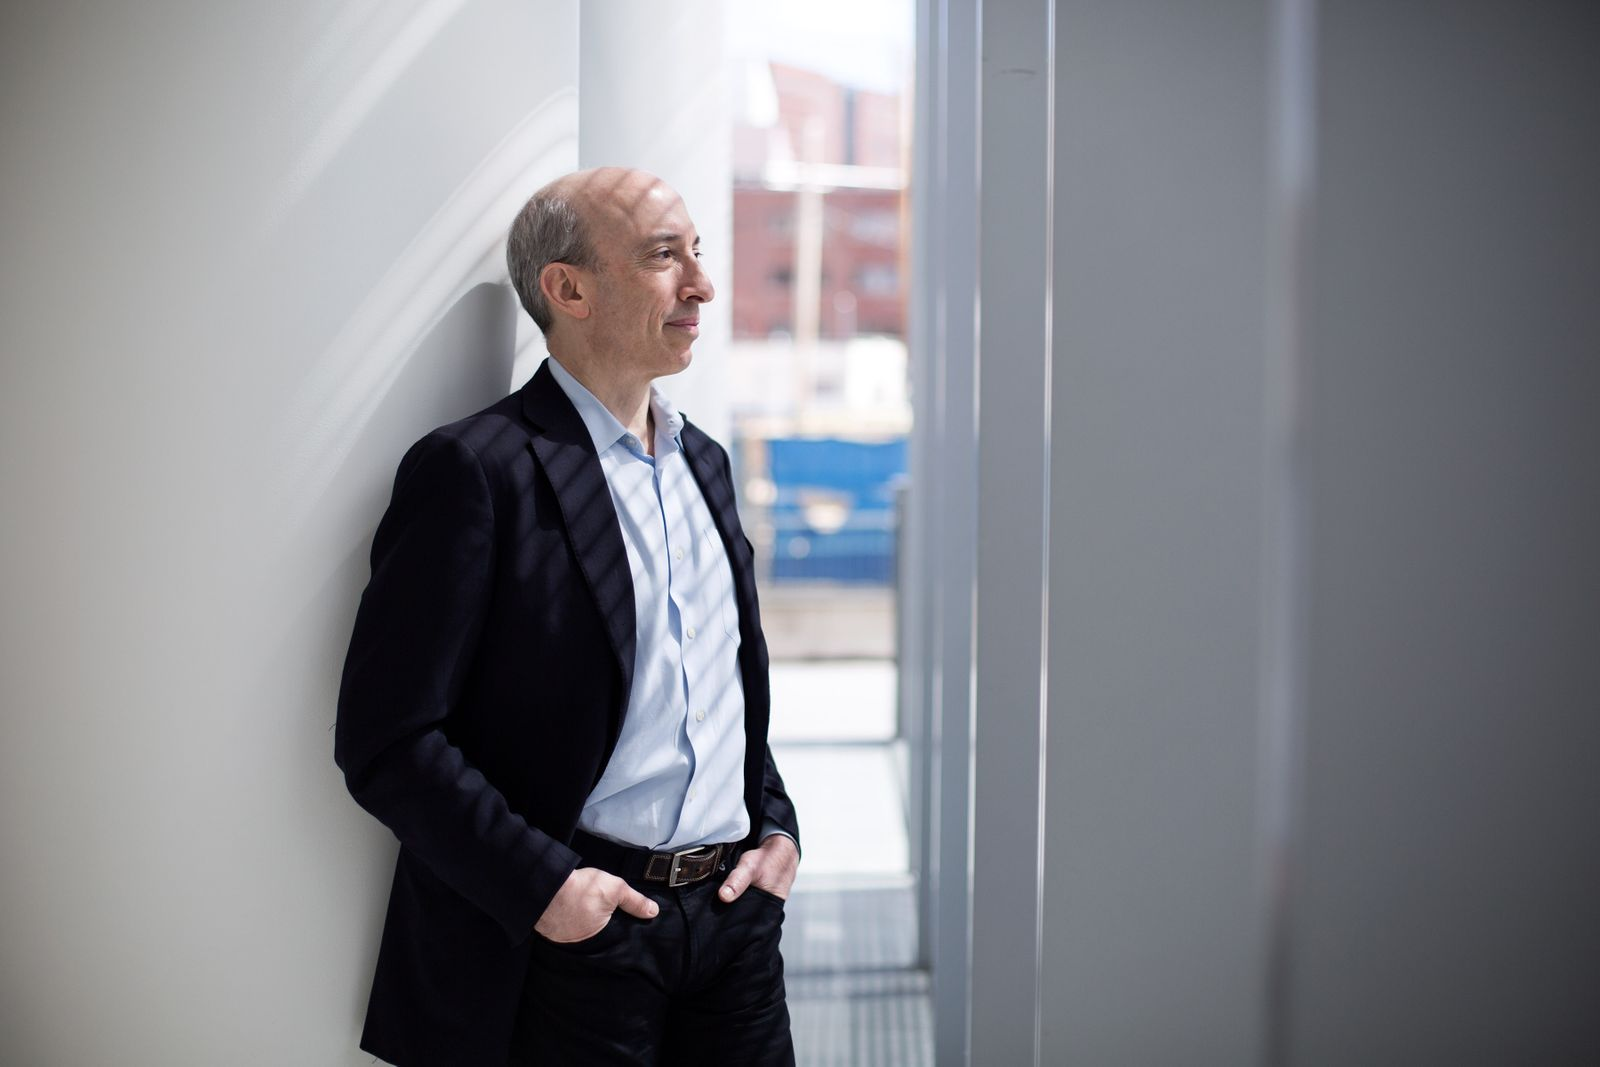 Gary Wensler, President Joe Biden's nominee to lead the Securities and Exchange Commission, at the MIT Media Lab in Cambridge, Mass., April 20, 2018. (Kayana Szymczak/The New York Times)